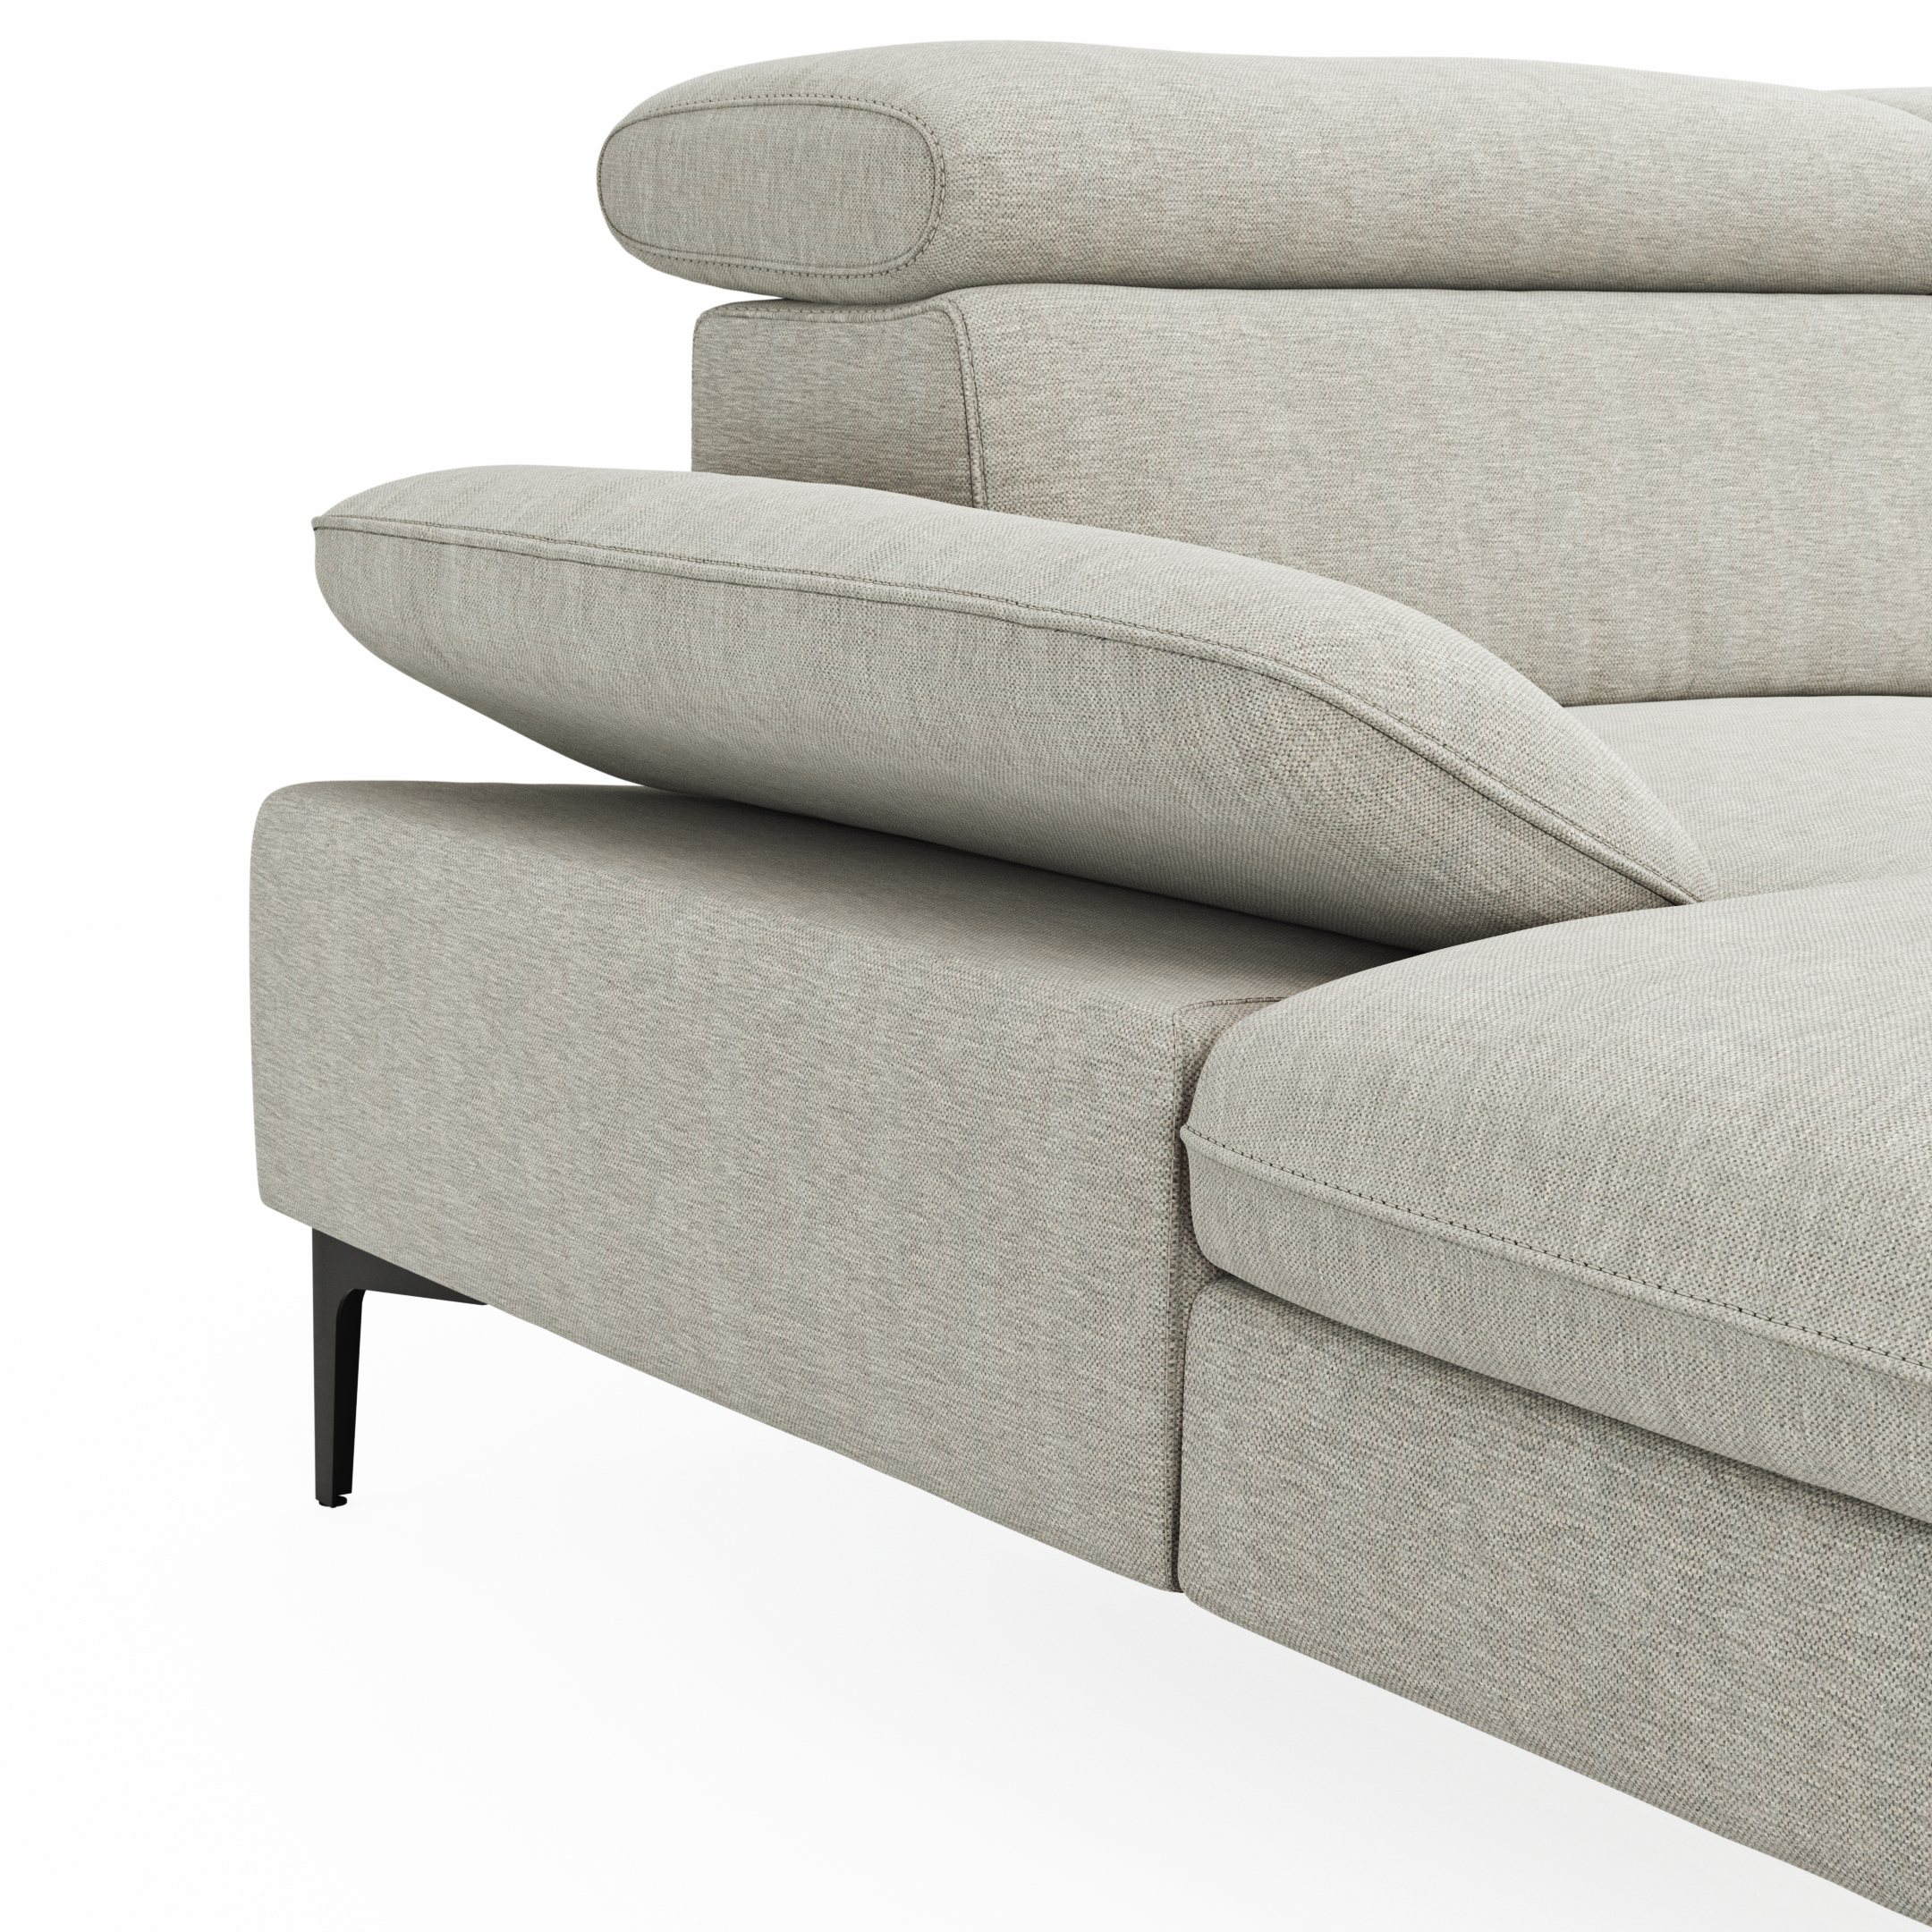 Global Family Ecksofa Felipa detailbild 1 105099 | Homepoet